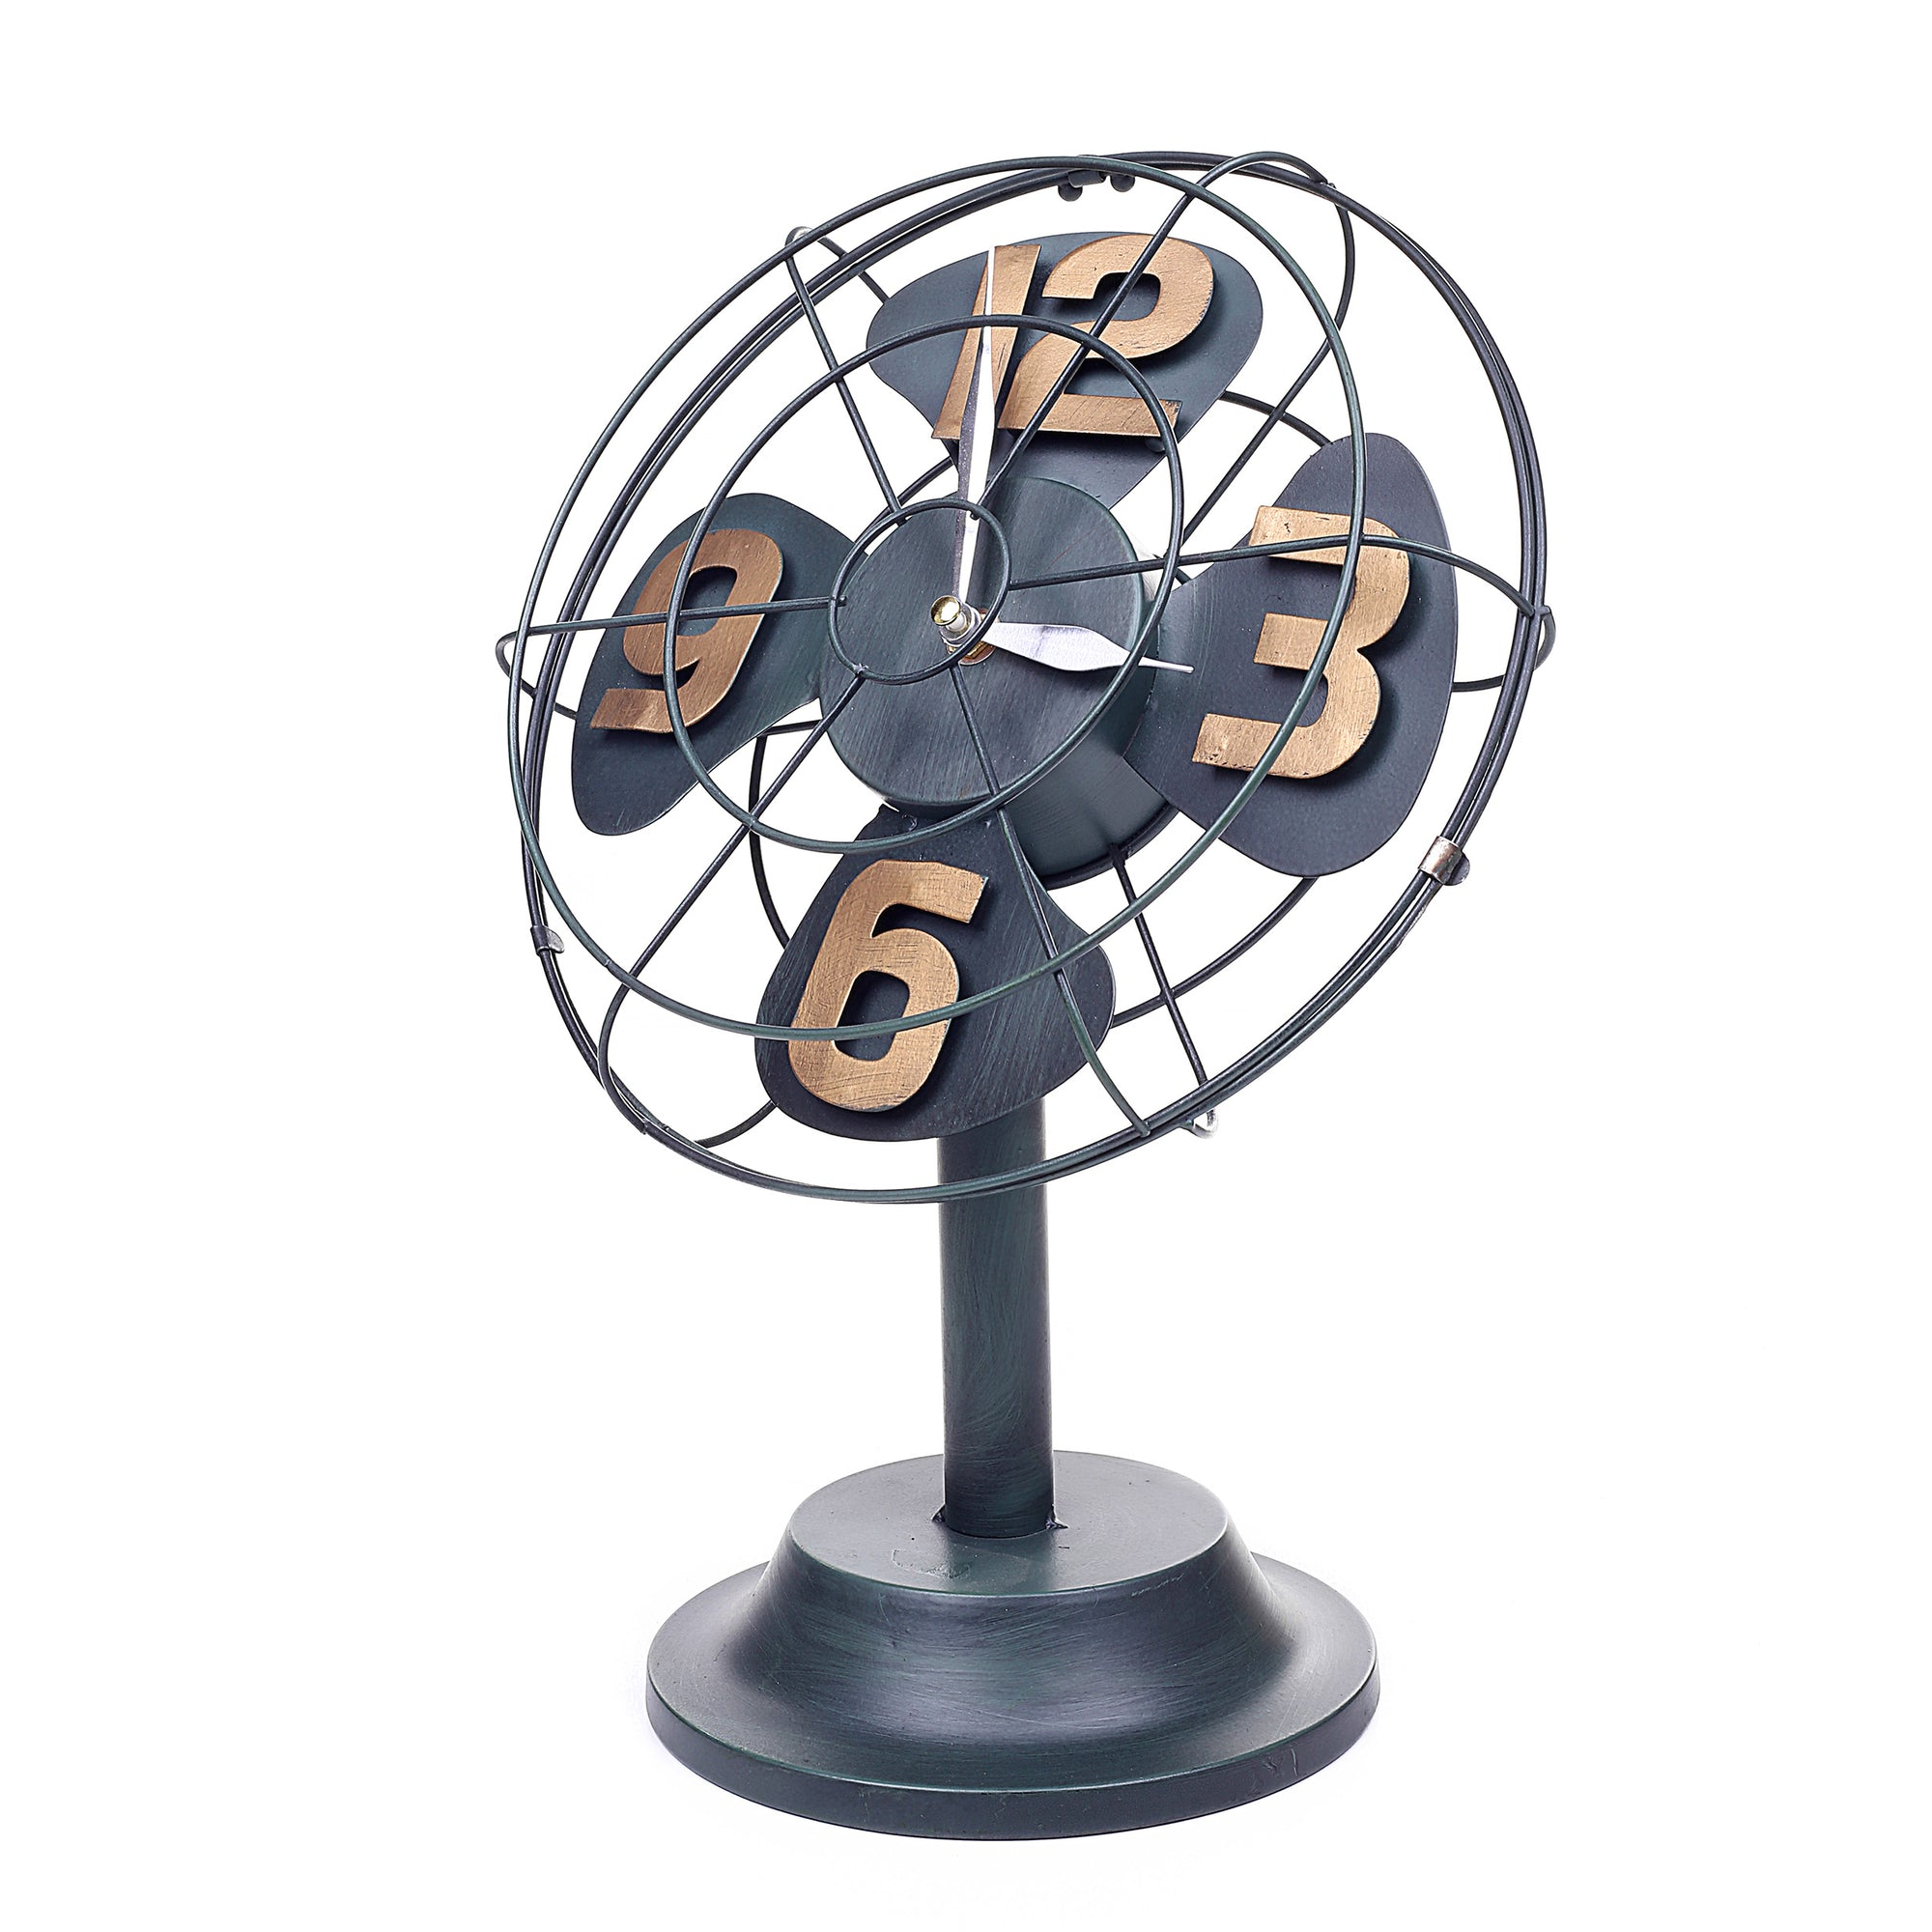 Decorative Stand Fan Design Table Clock